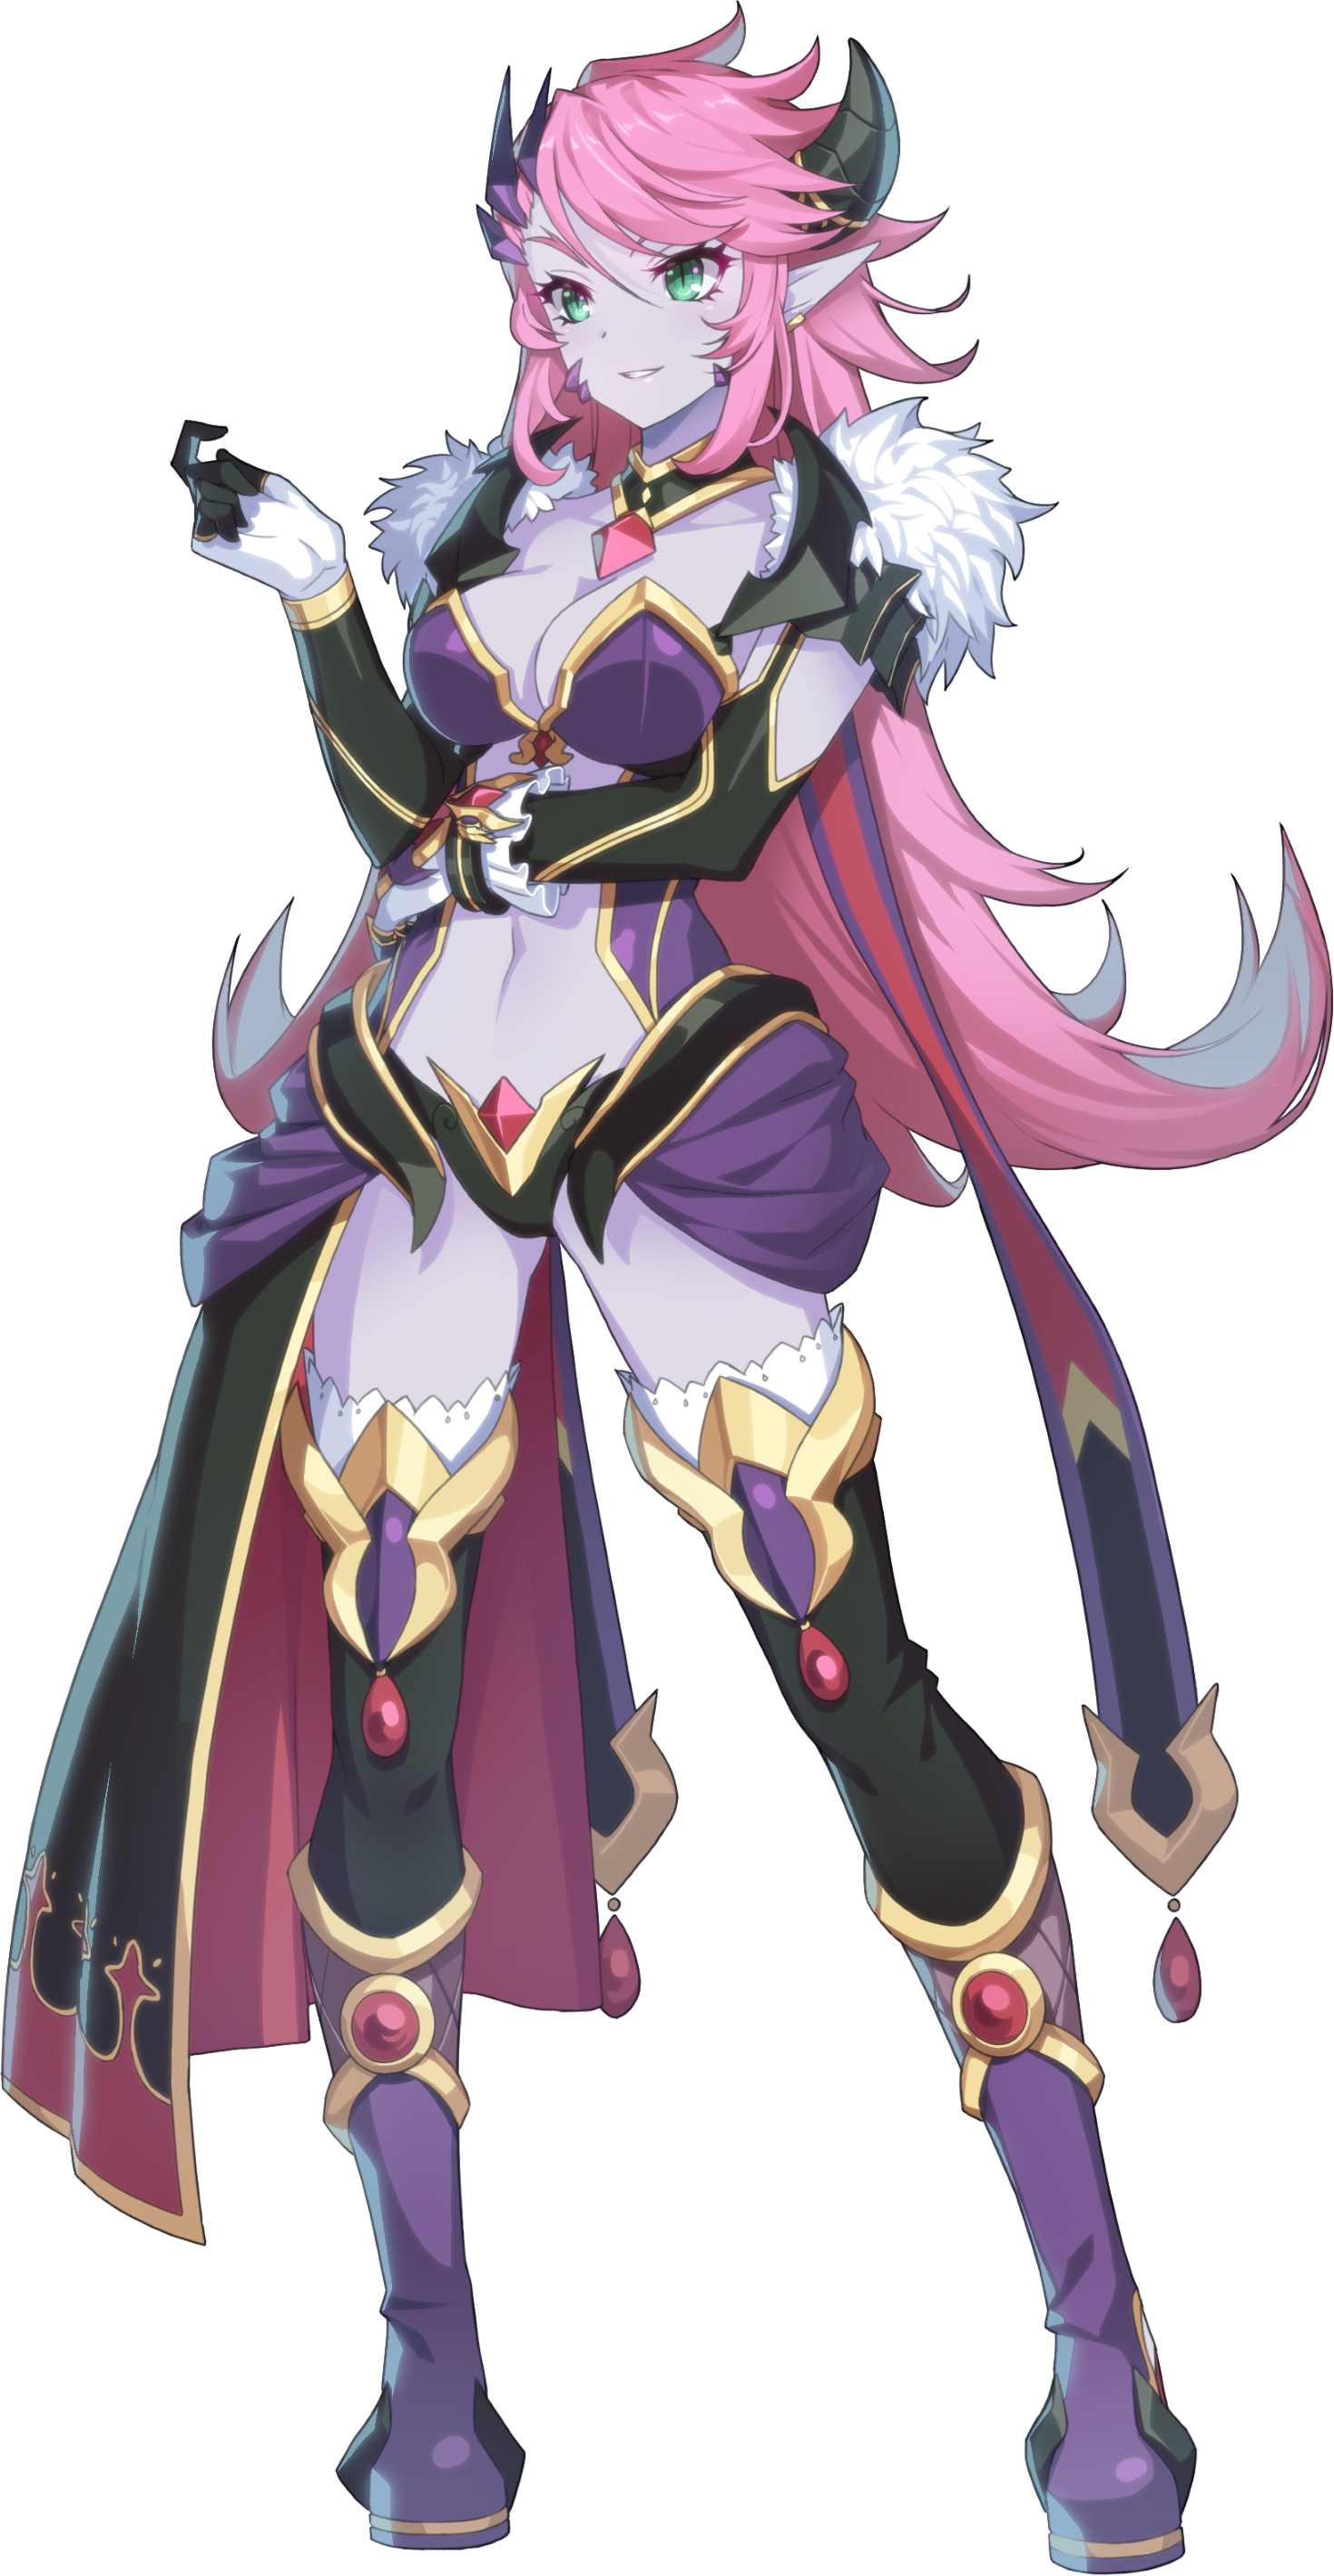 Ley/Grand Chase Dimensional Chaser | Grand Chase Wiki